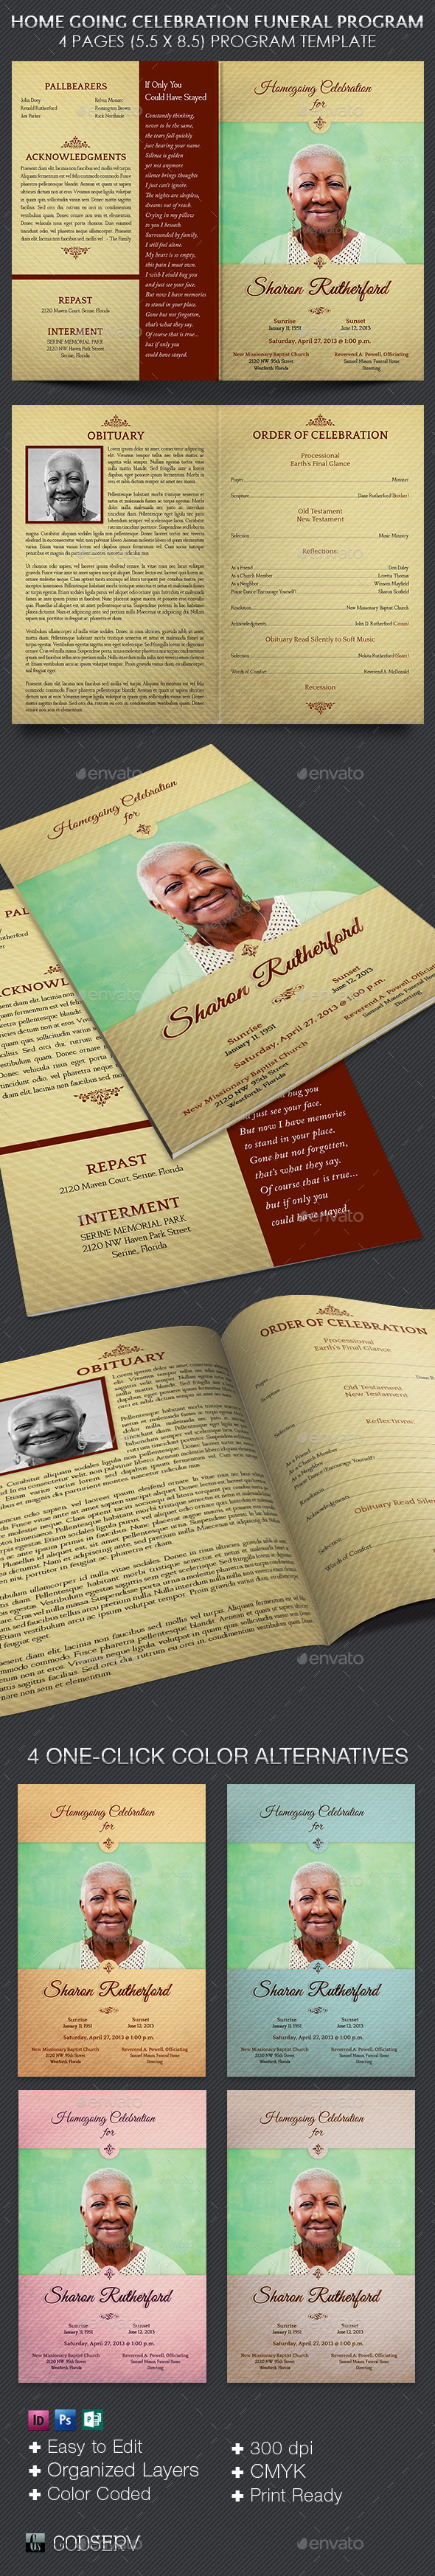 Home Going Funeral Program Template - Informational Brochures